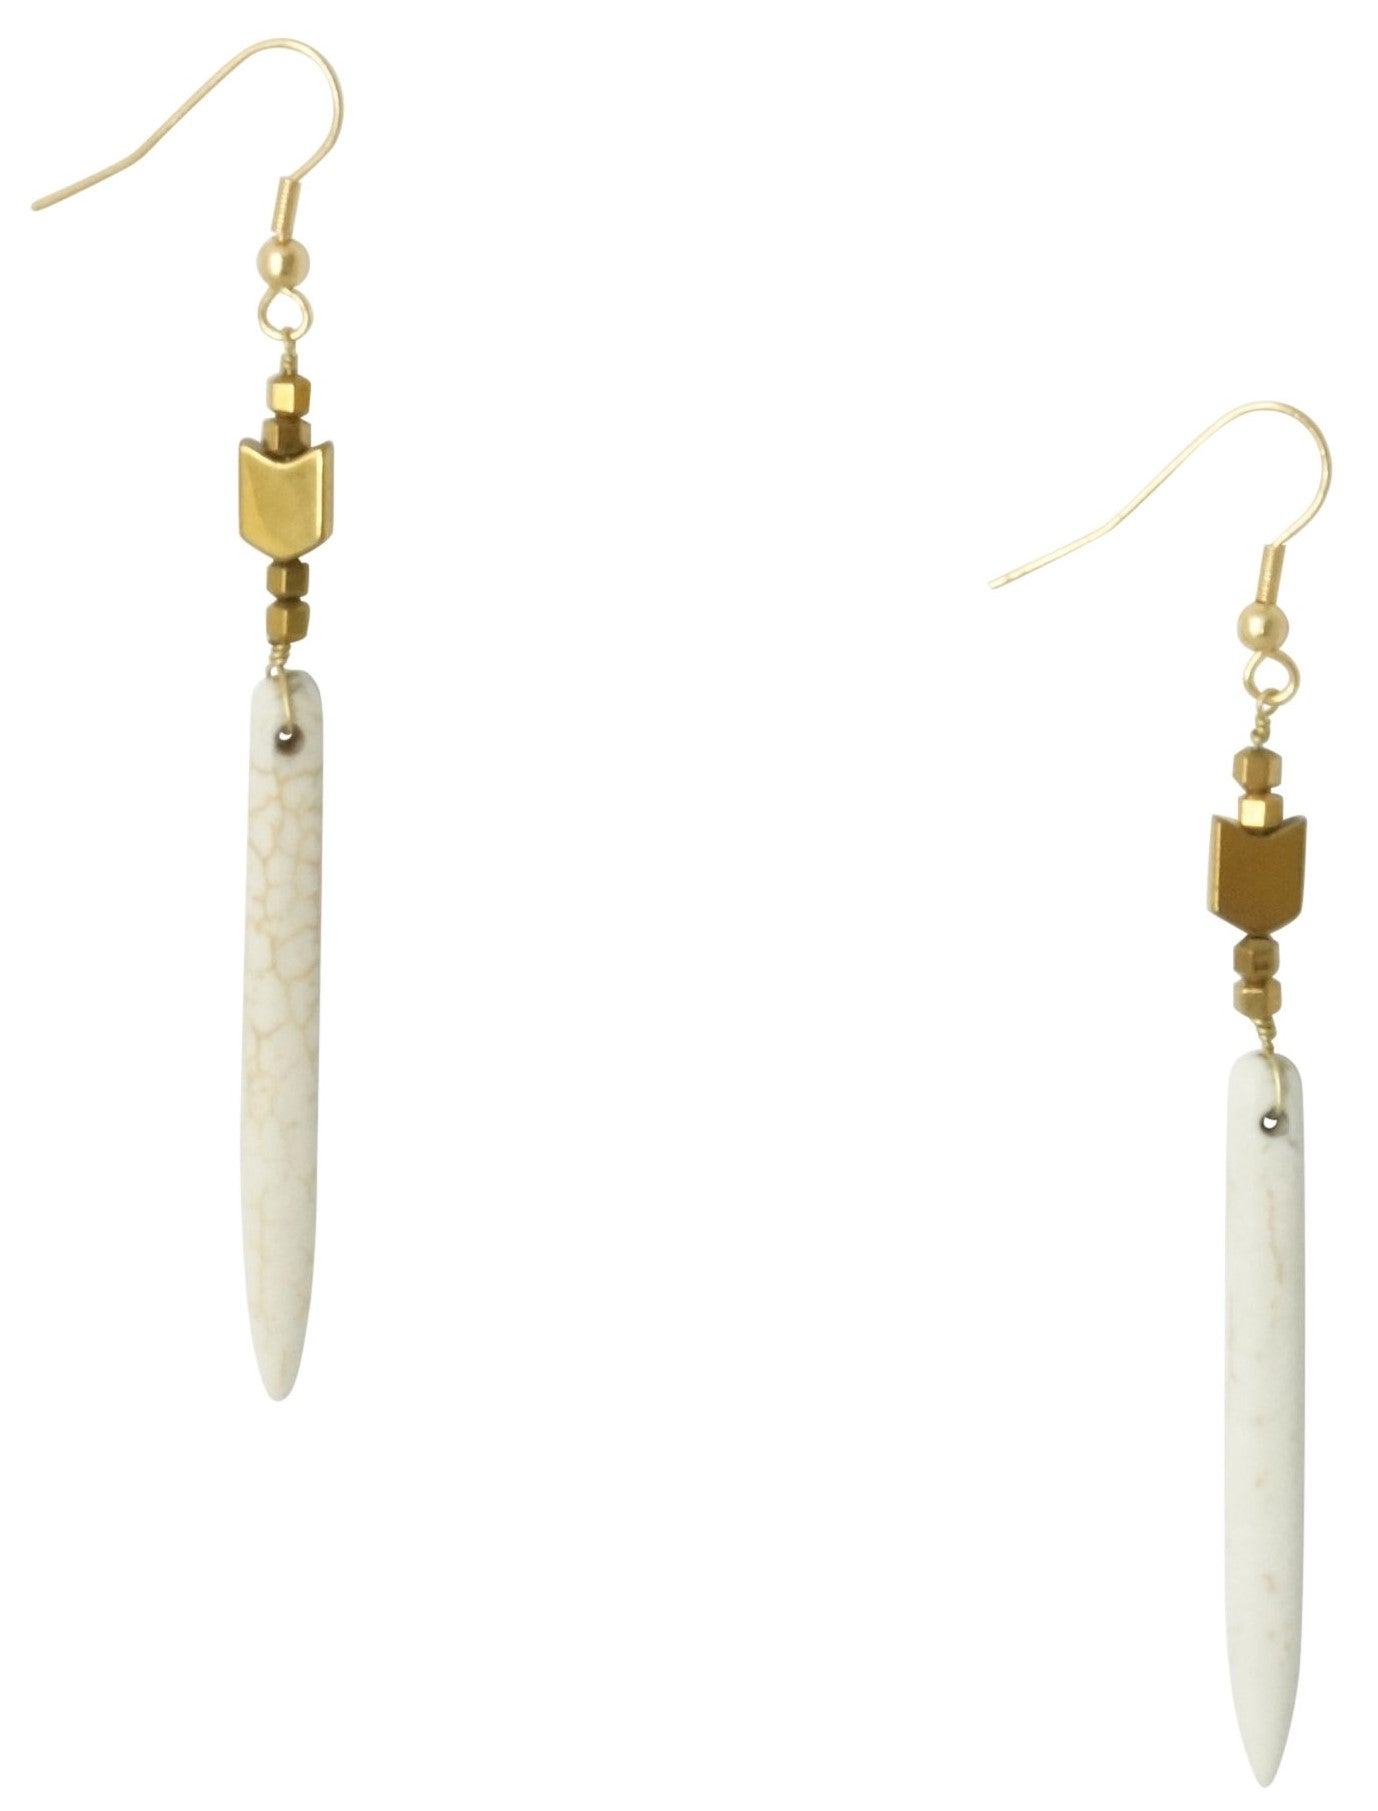 Patience Earrings - Carolyn Hearn Designs